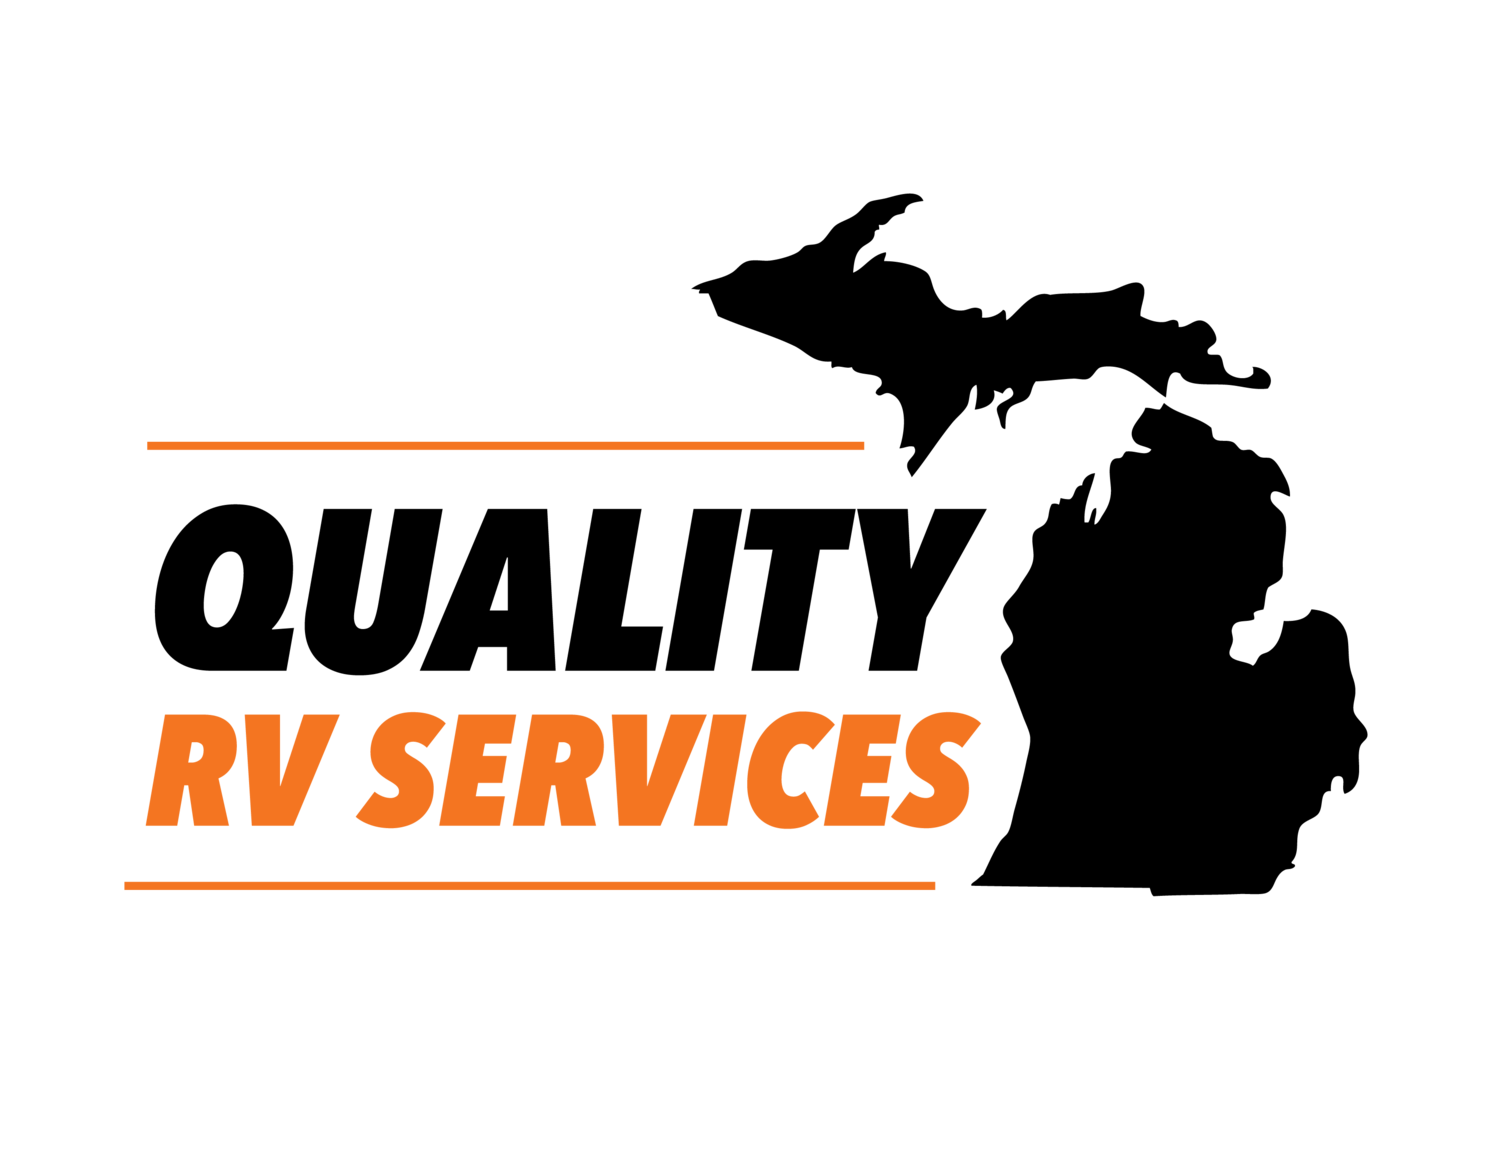 Quality RV Services